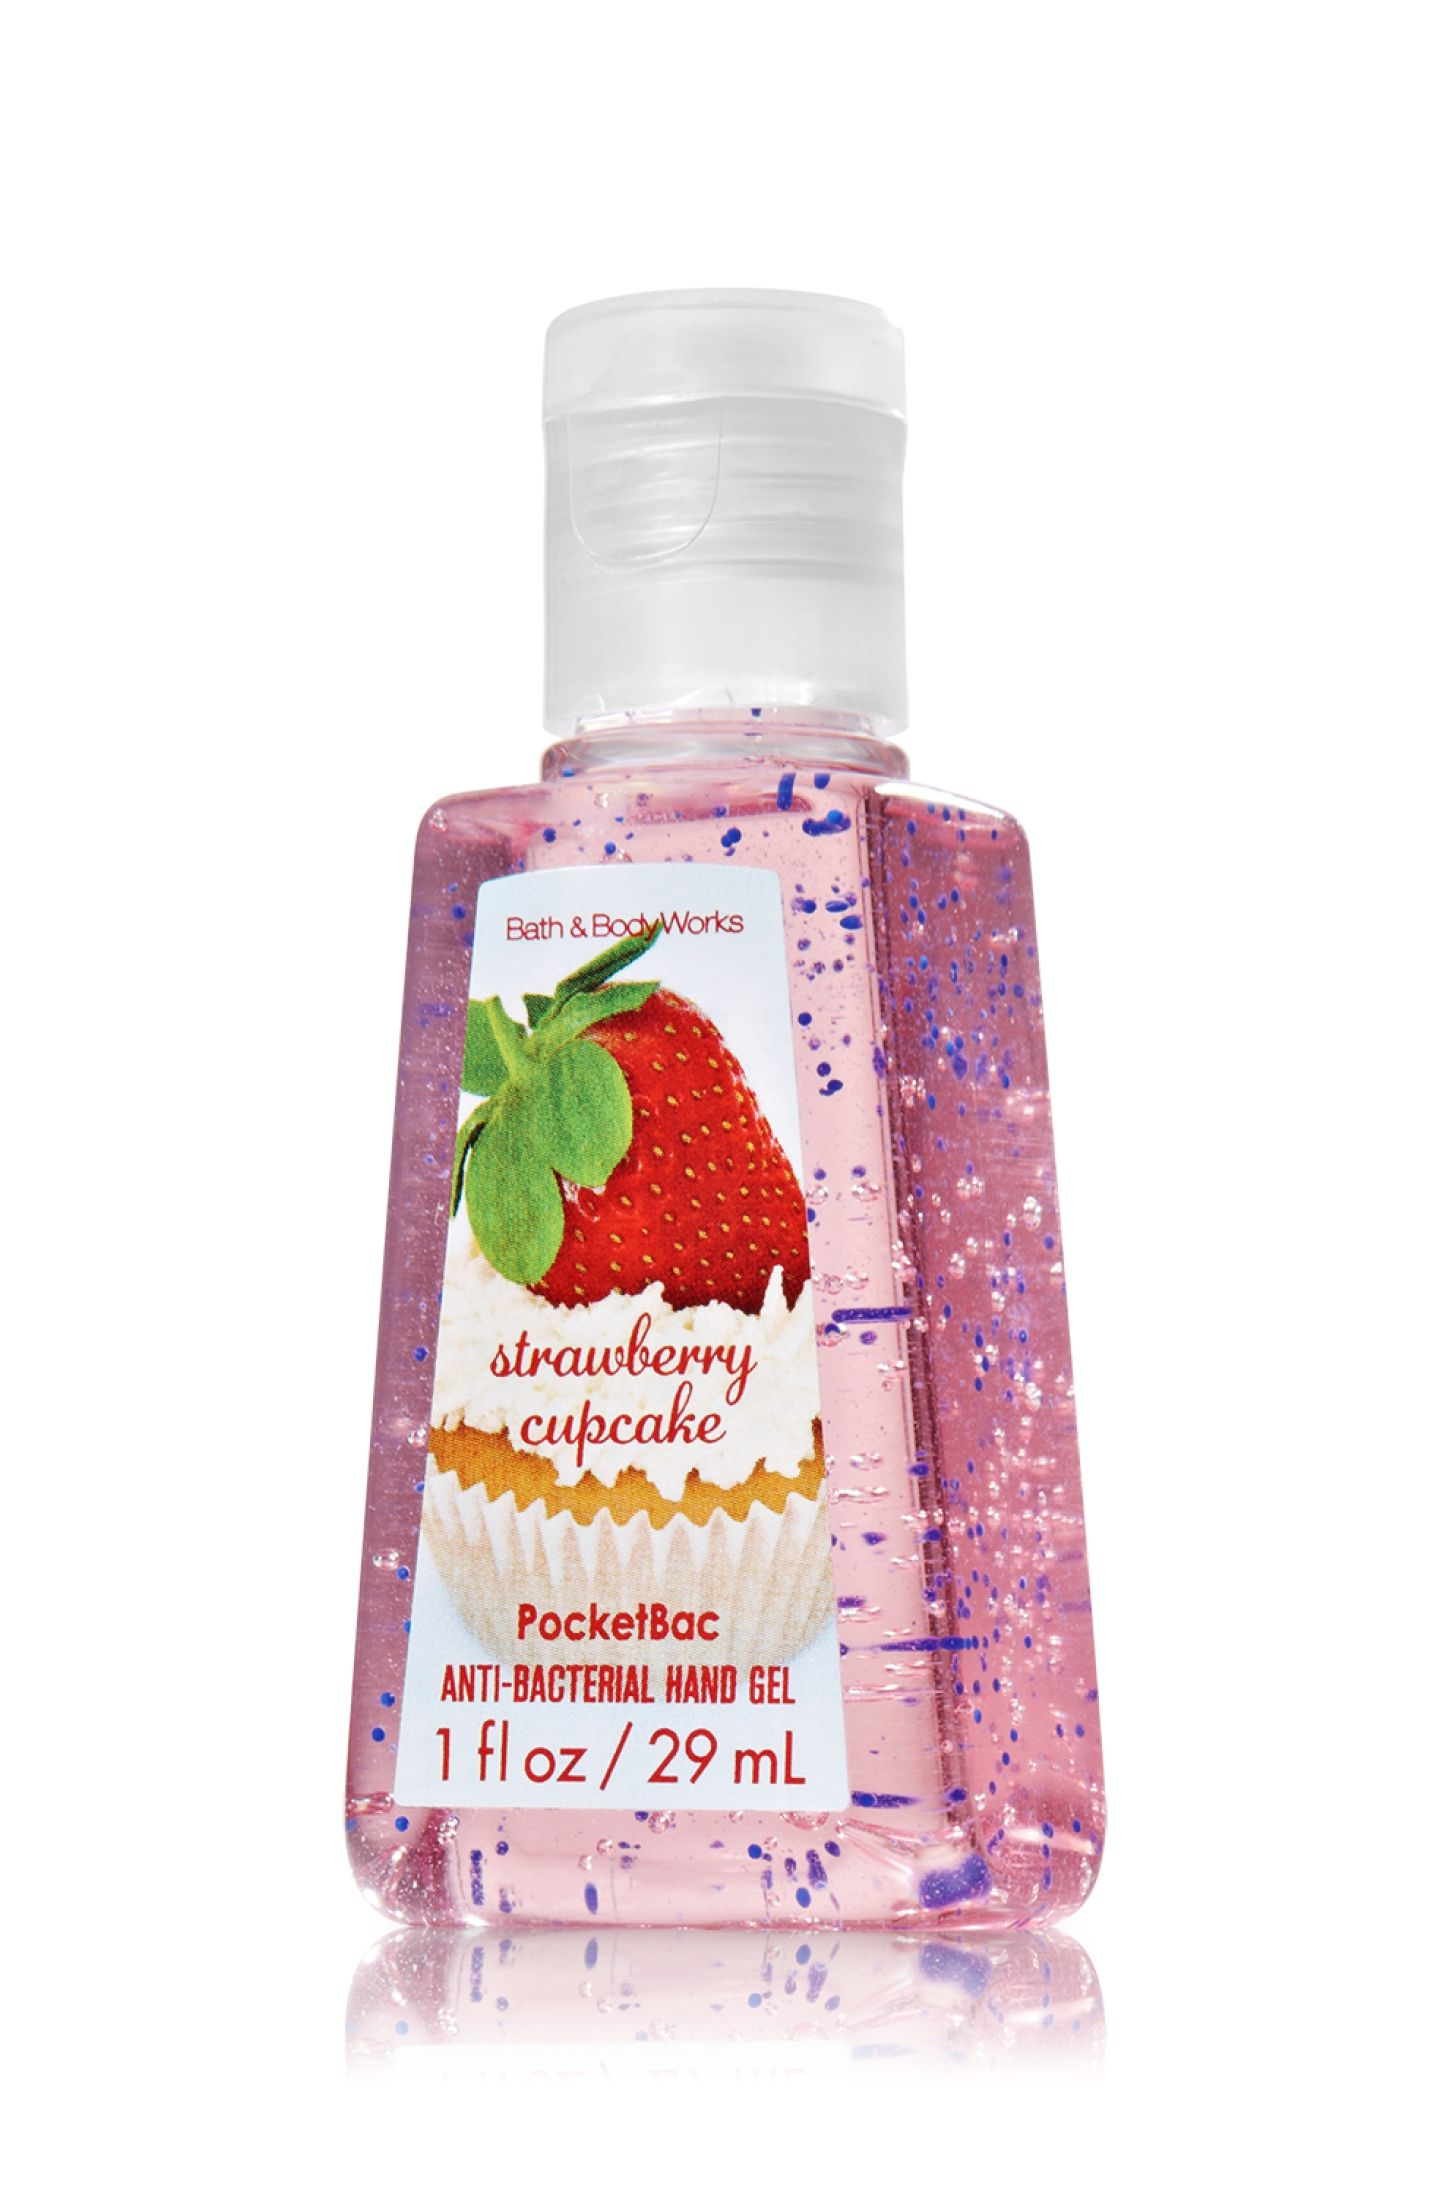 Strawberry Cupcake Pocketbac Sanitizing Hand Gel Anti Bacterial